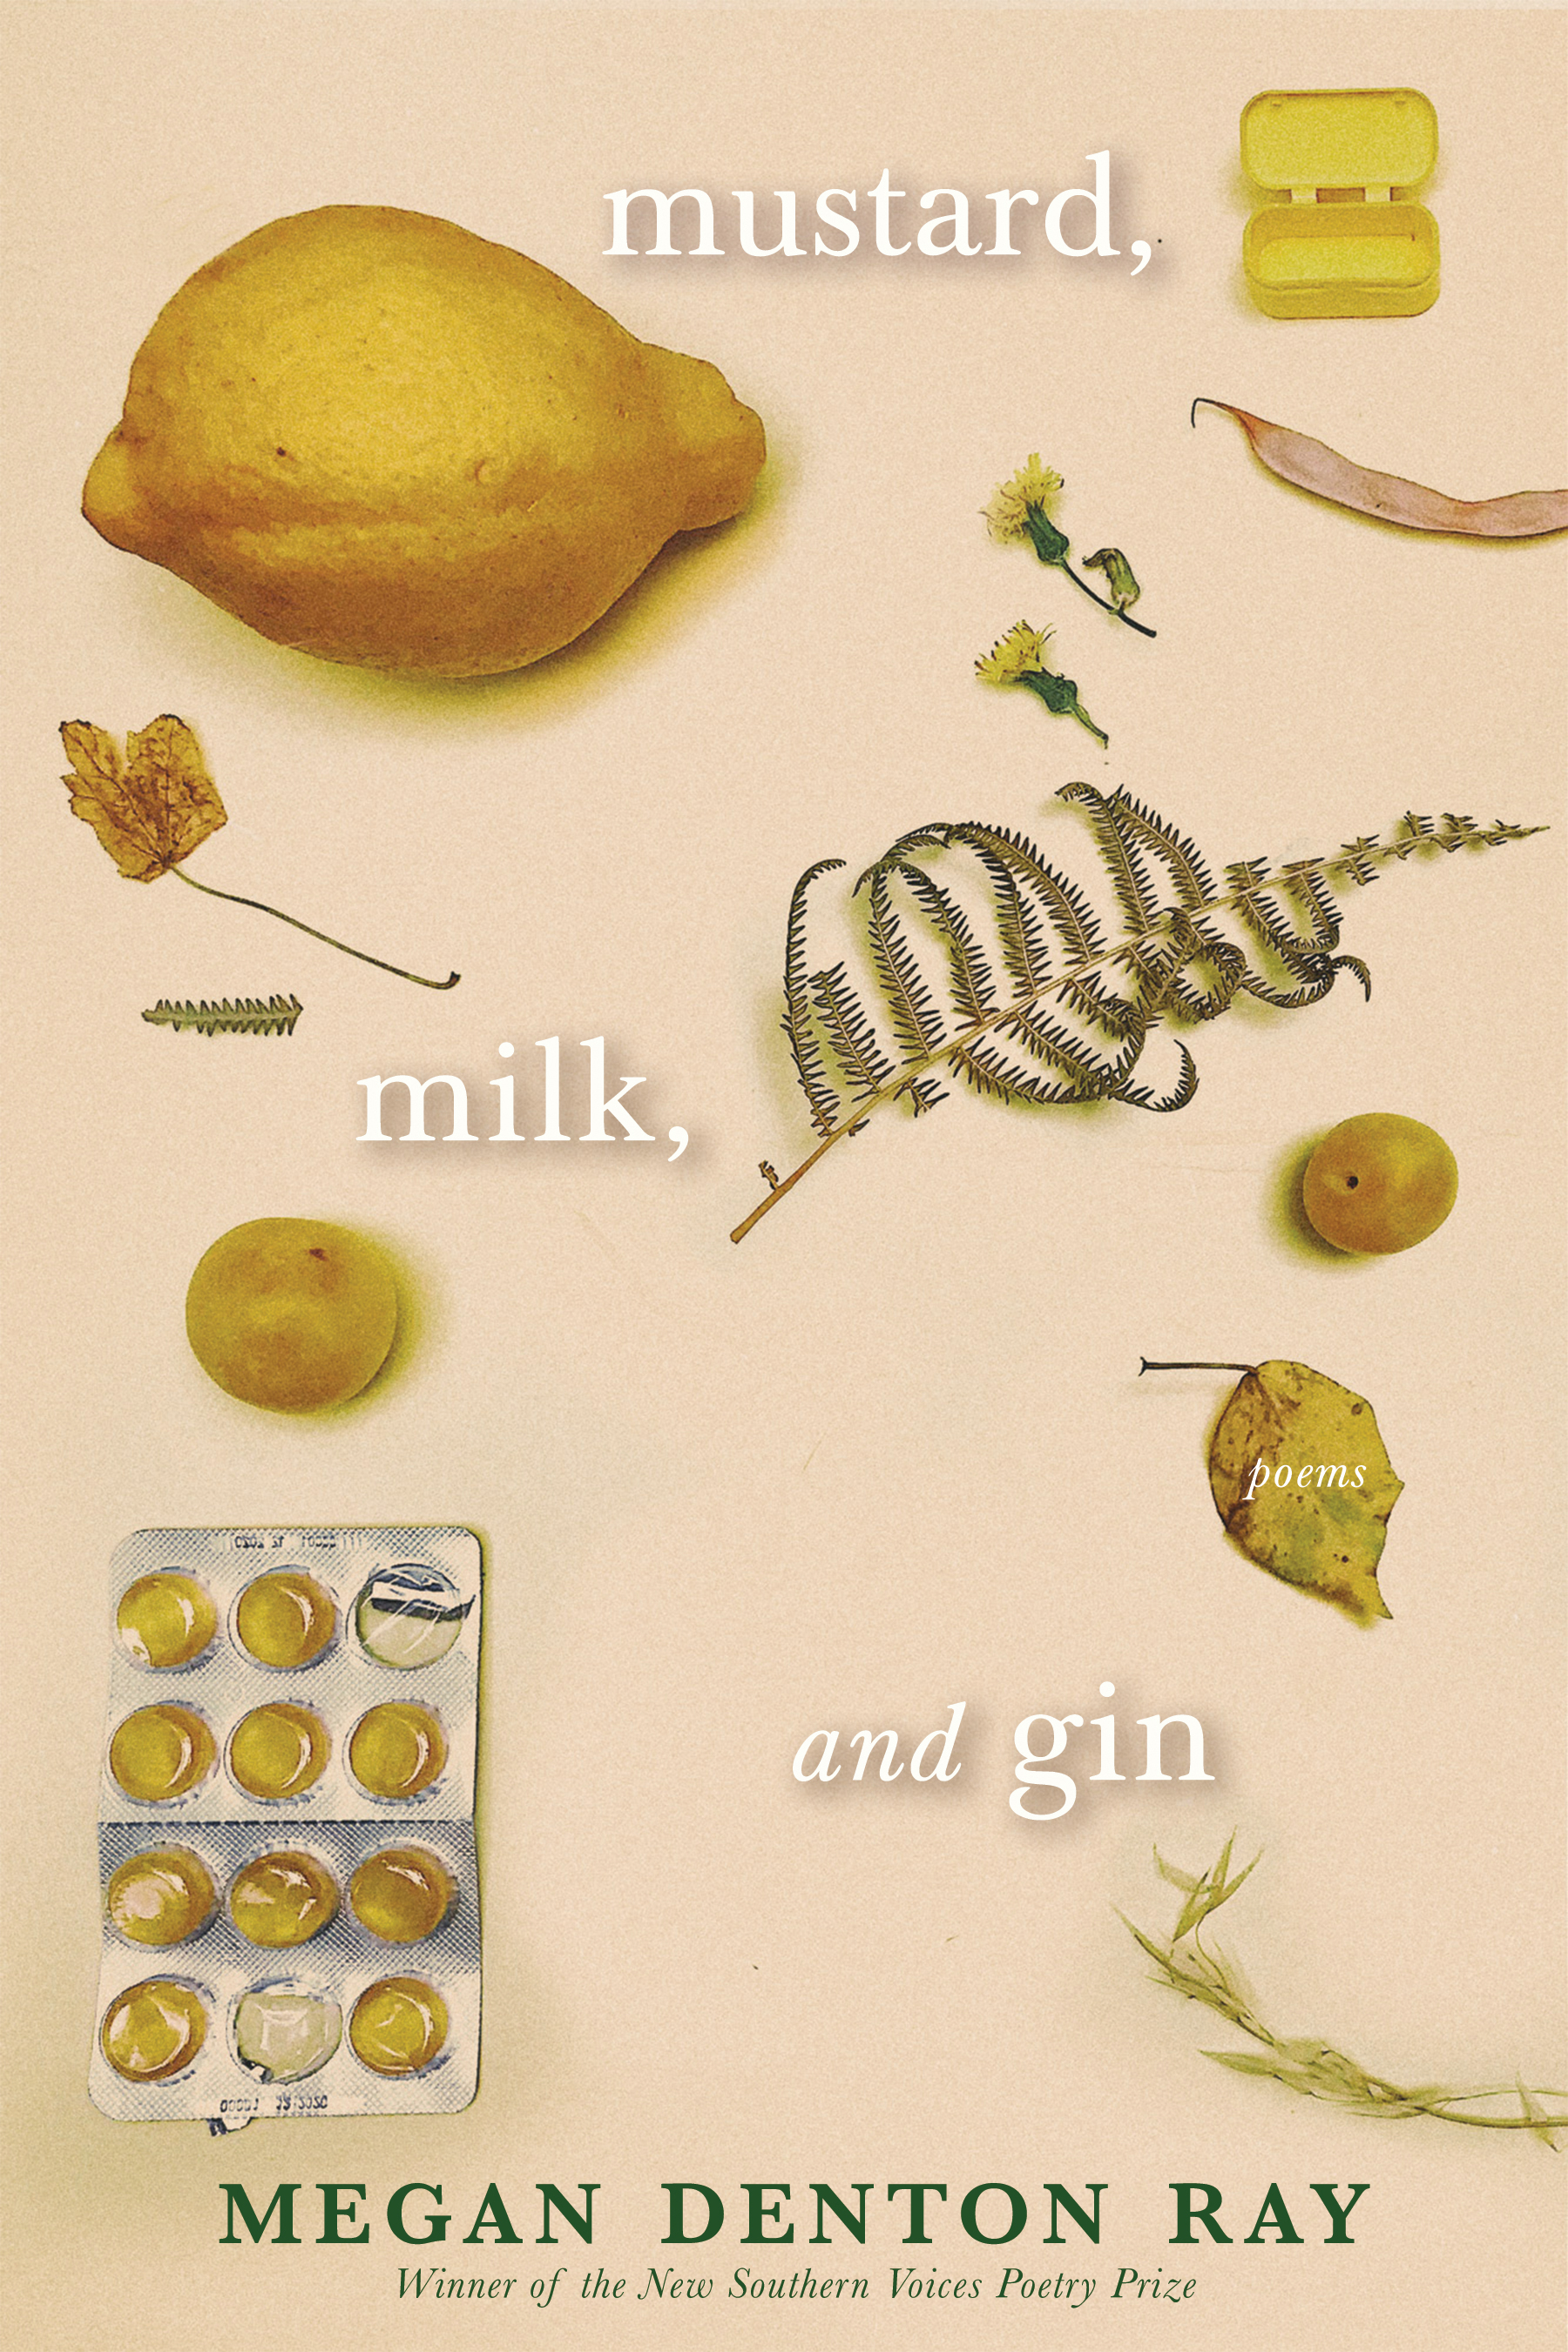 Mustard, Milk, and Gin